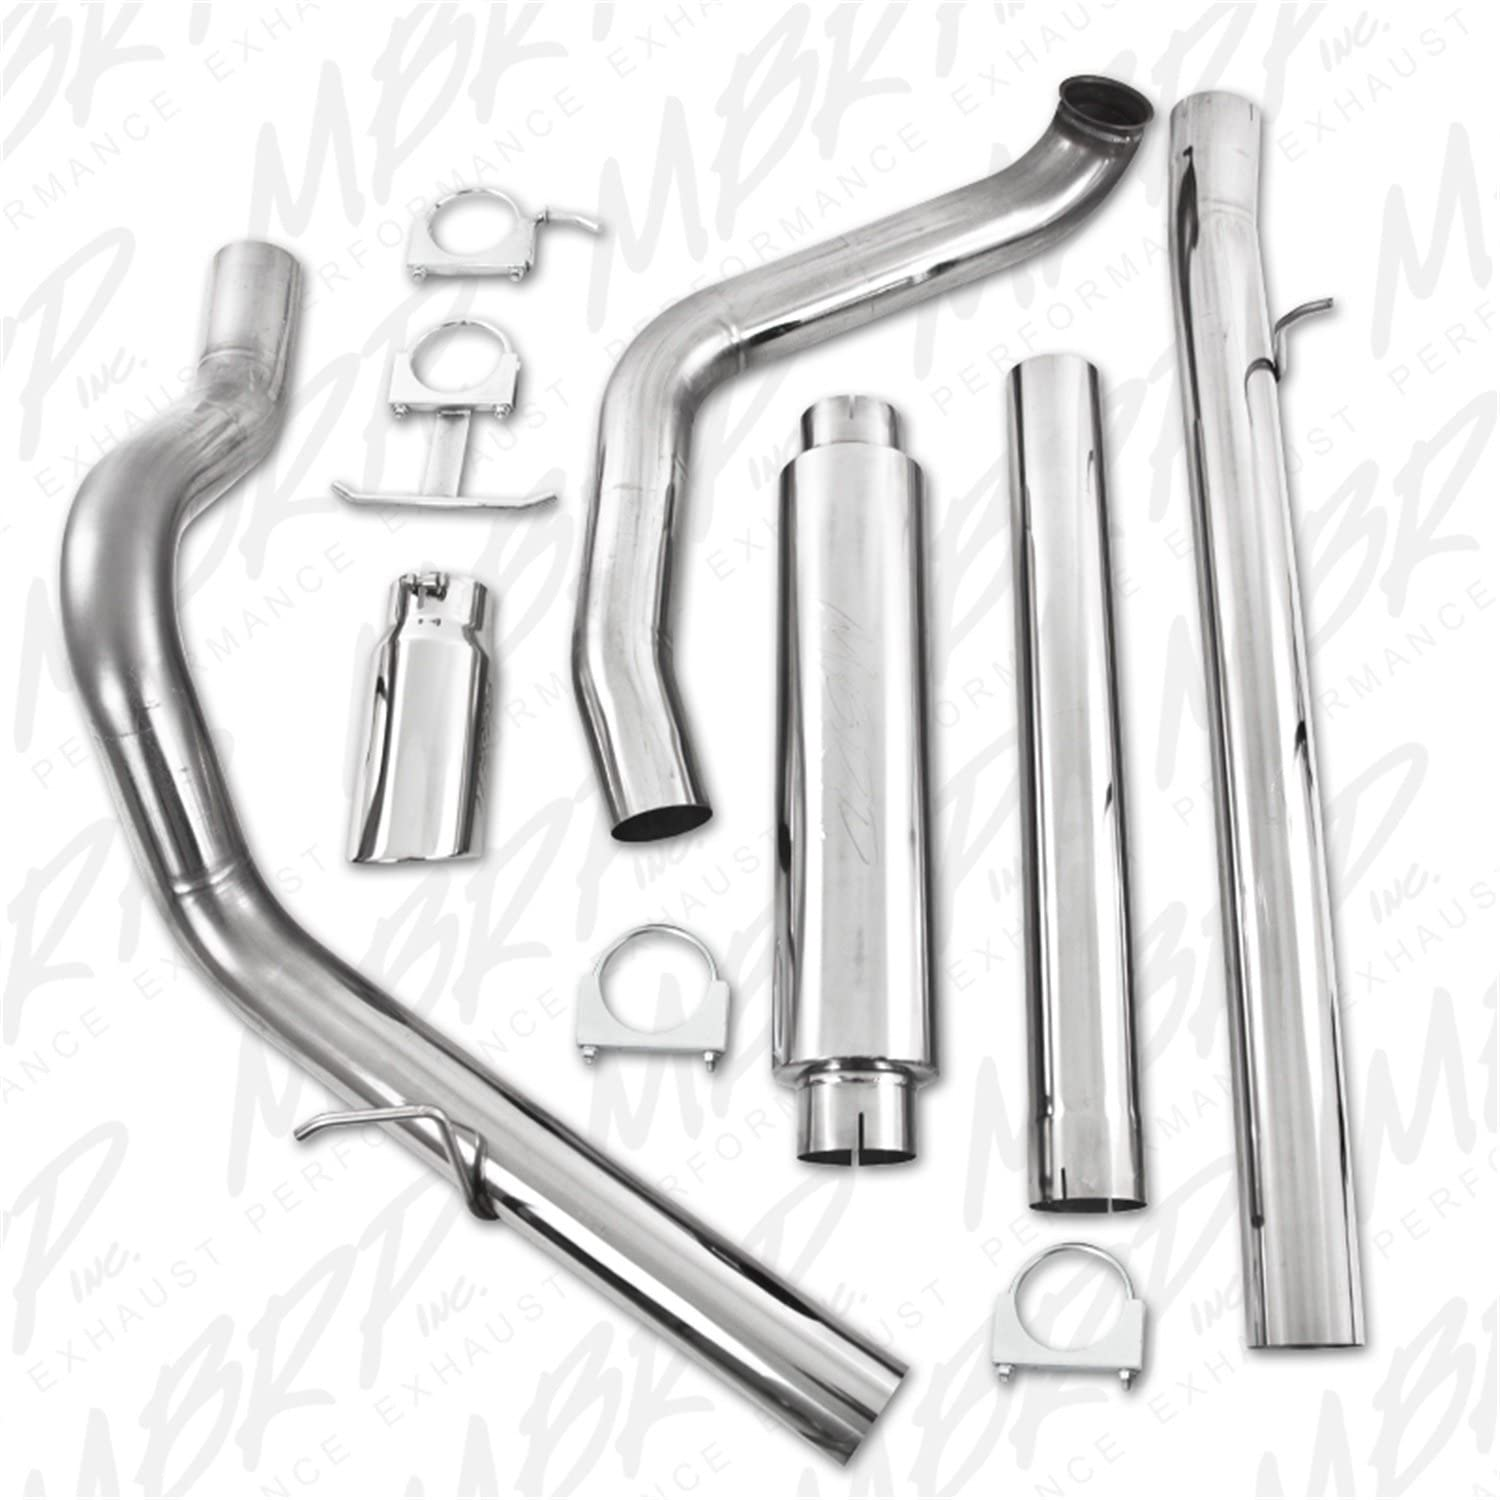 MBRP S6200409 T409 Stainless Steel Turbo Back Single Side Exit Exhaust System